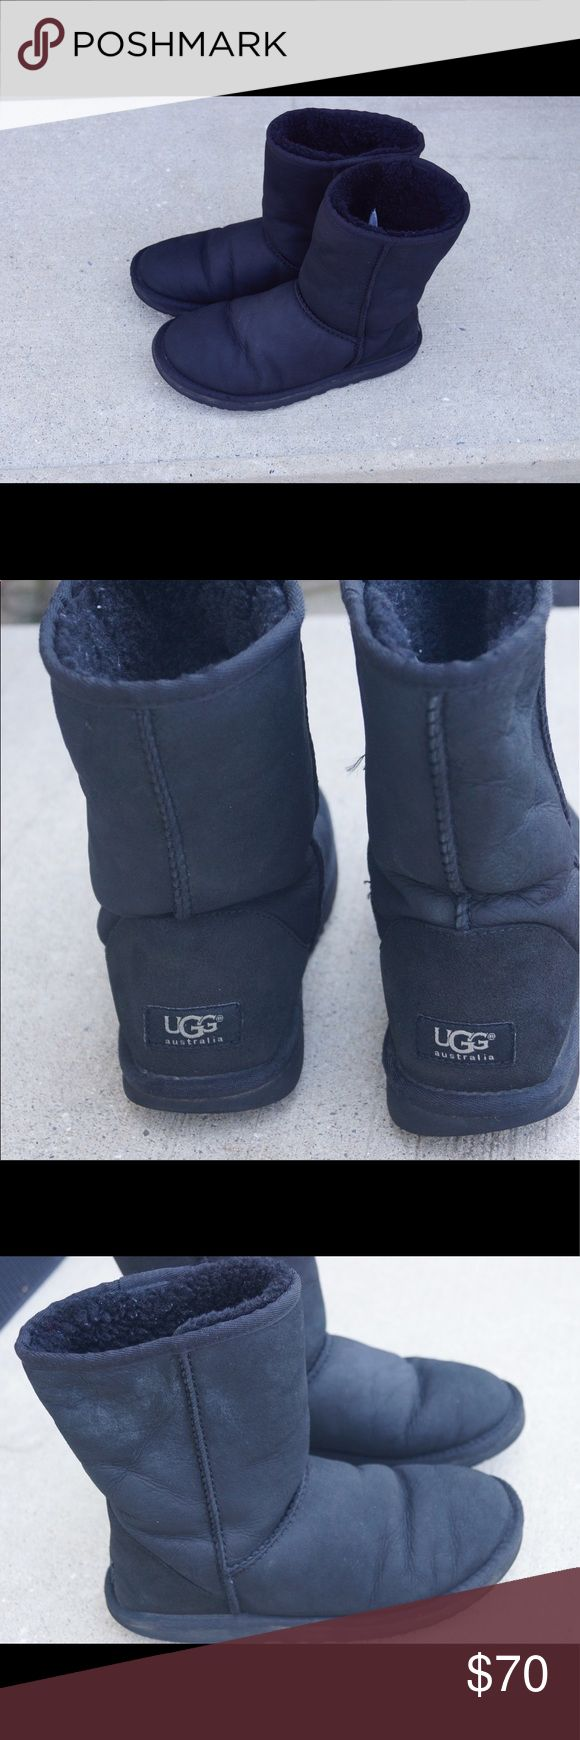 Classic short UGGS size 7 pre-owned with some signs of wear but definitely still in good condition! UGG Other